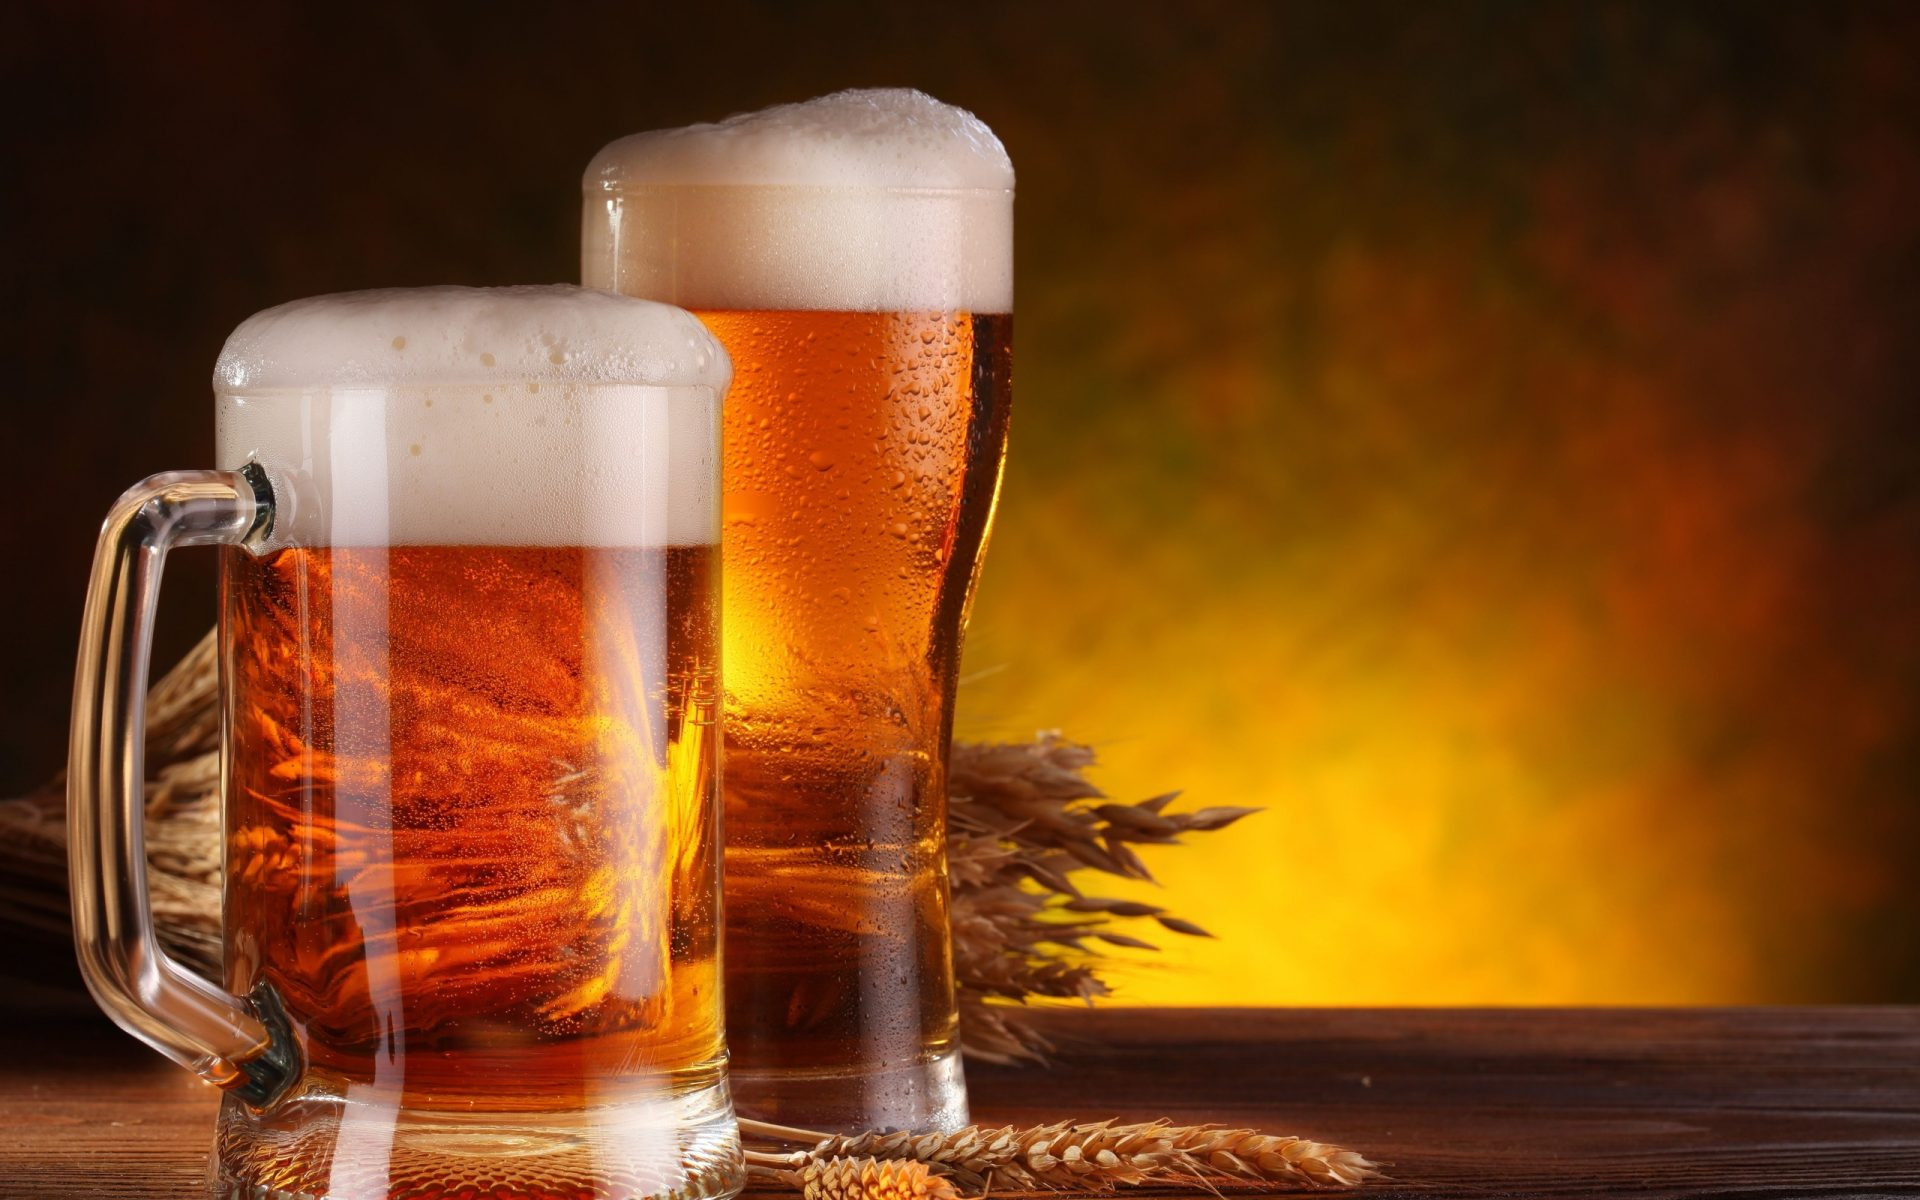 Alcoholic beverage development based on starchy materials